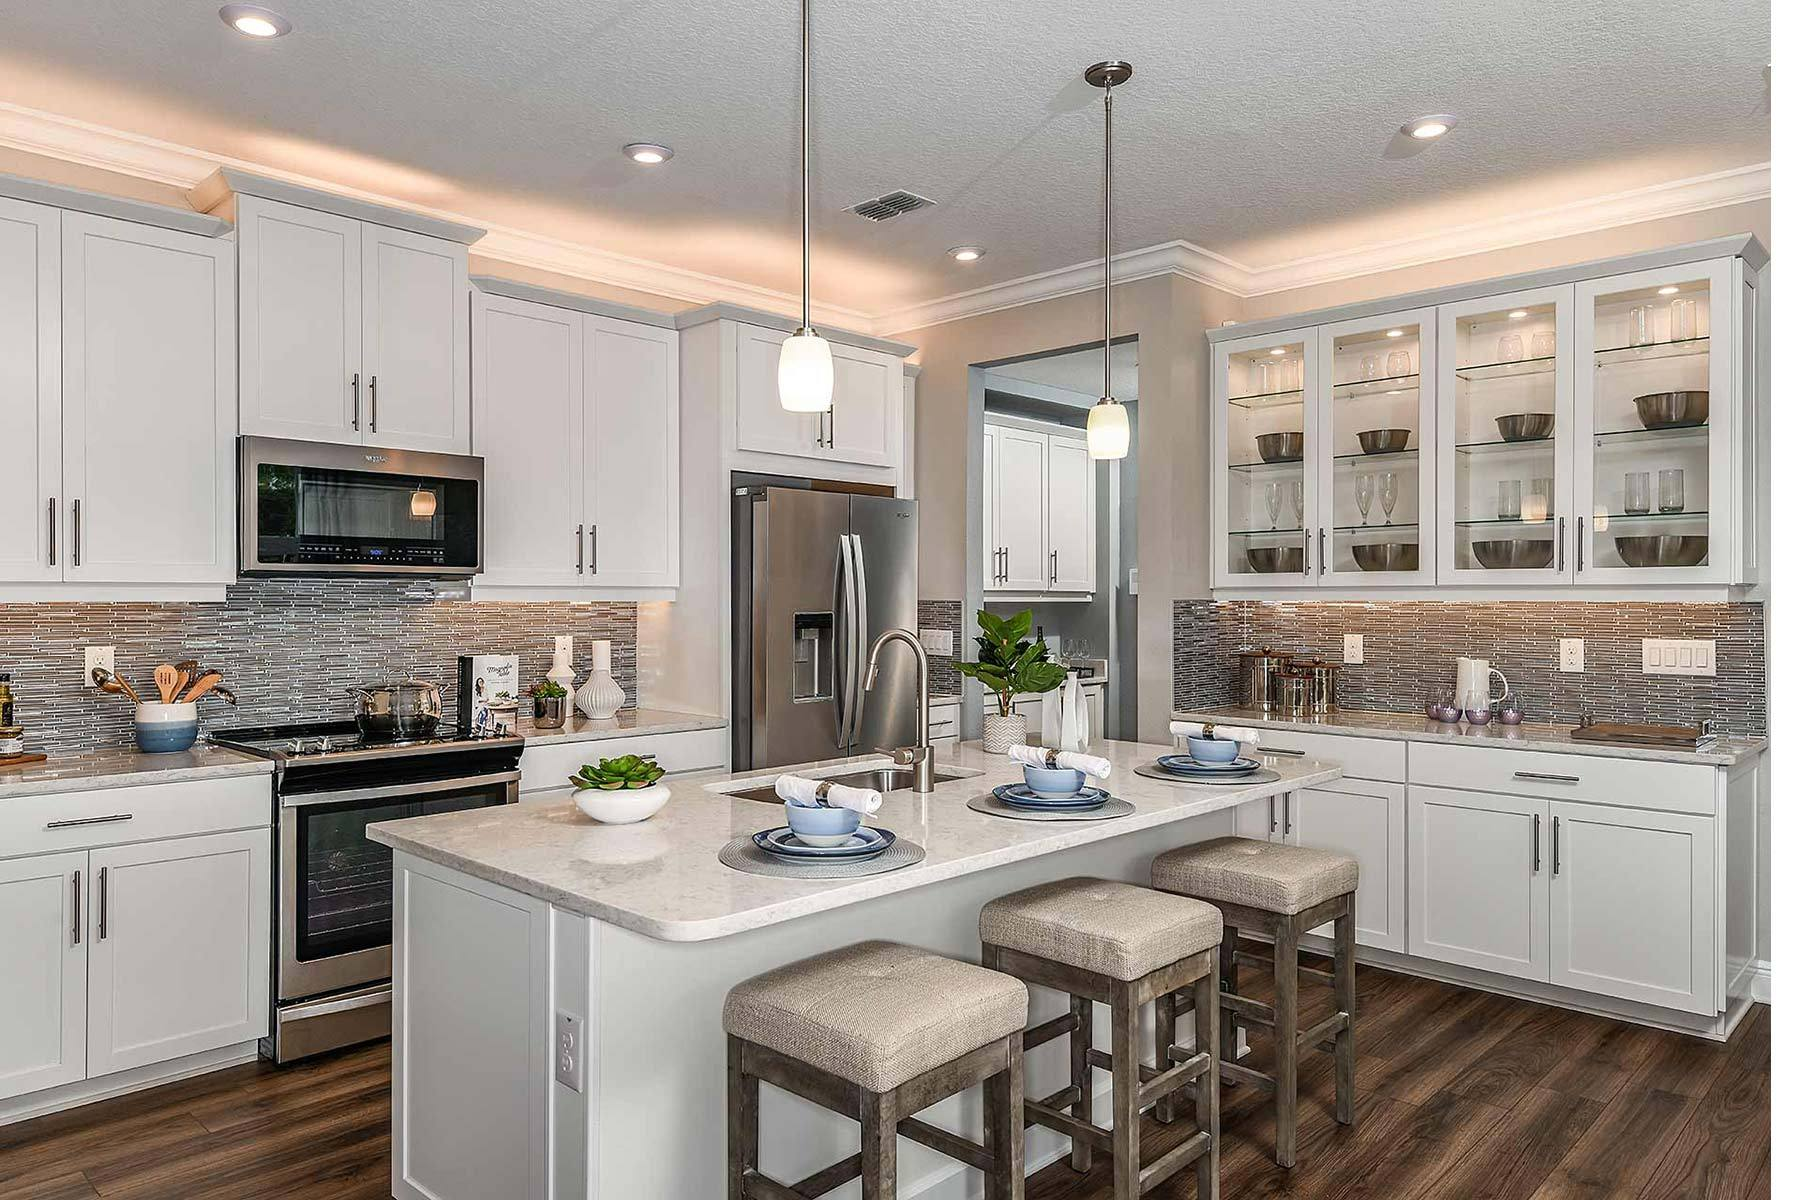 Kitchen featured in the Venice By Mattamy Homes in Tampa-St. Petersburg, FL